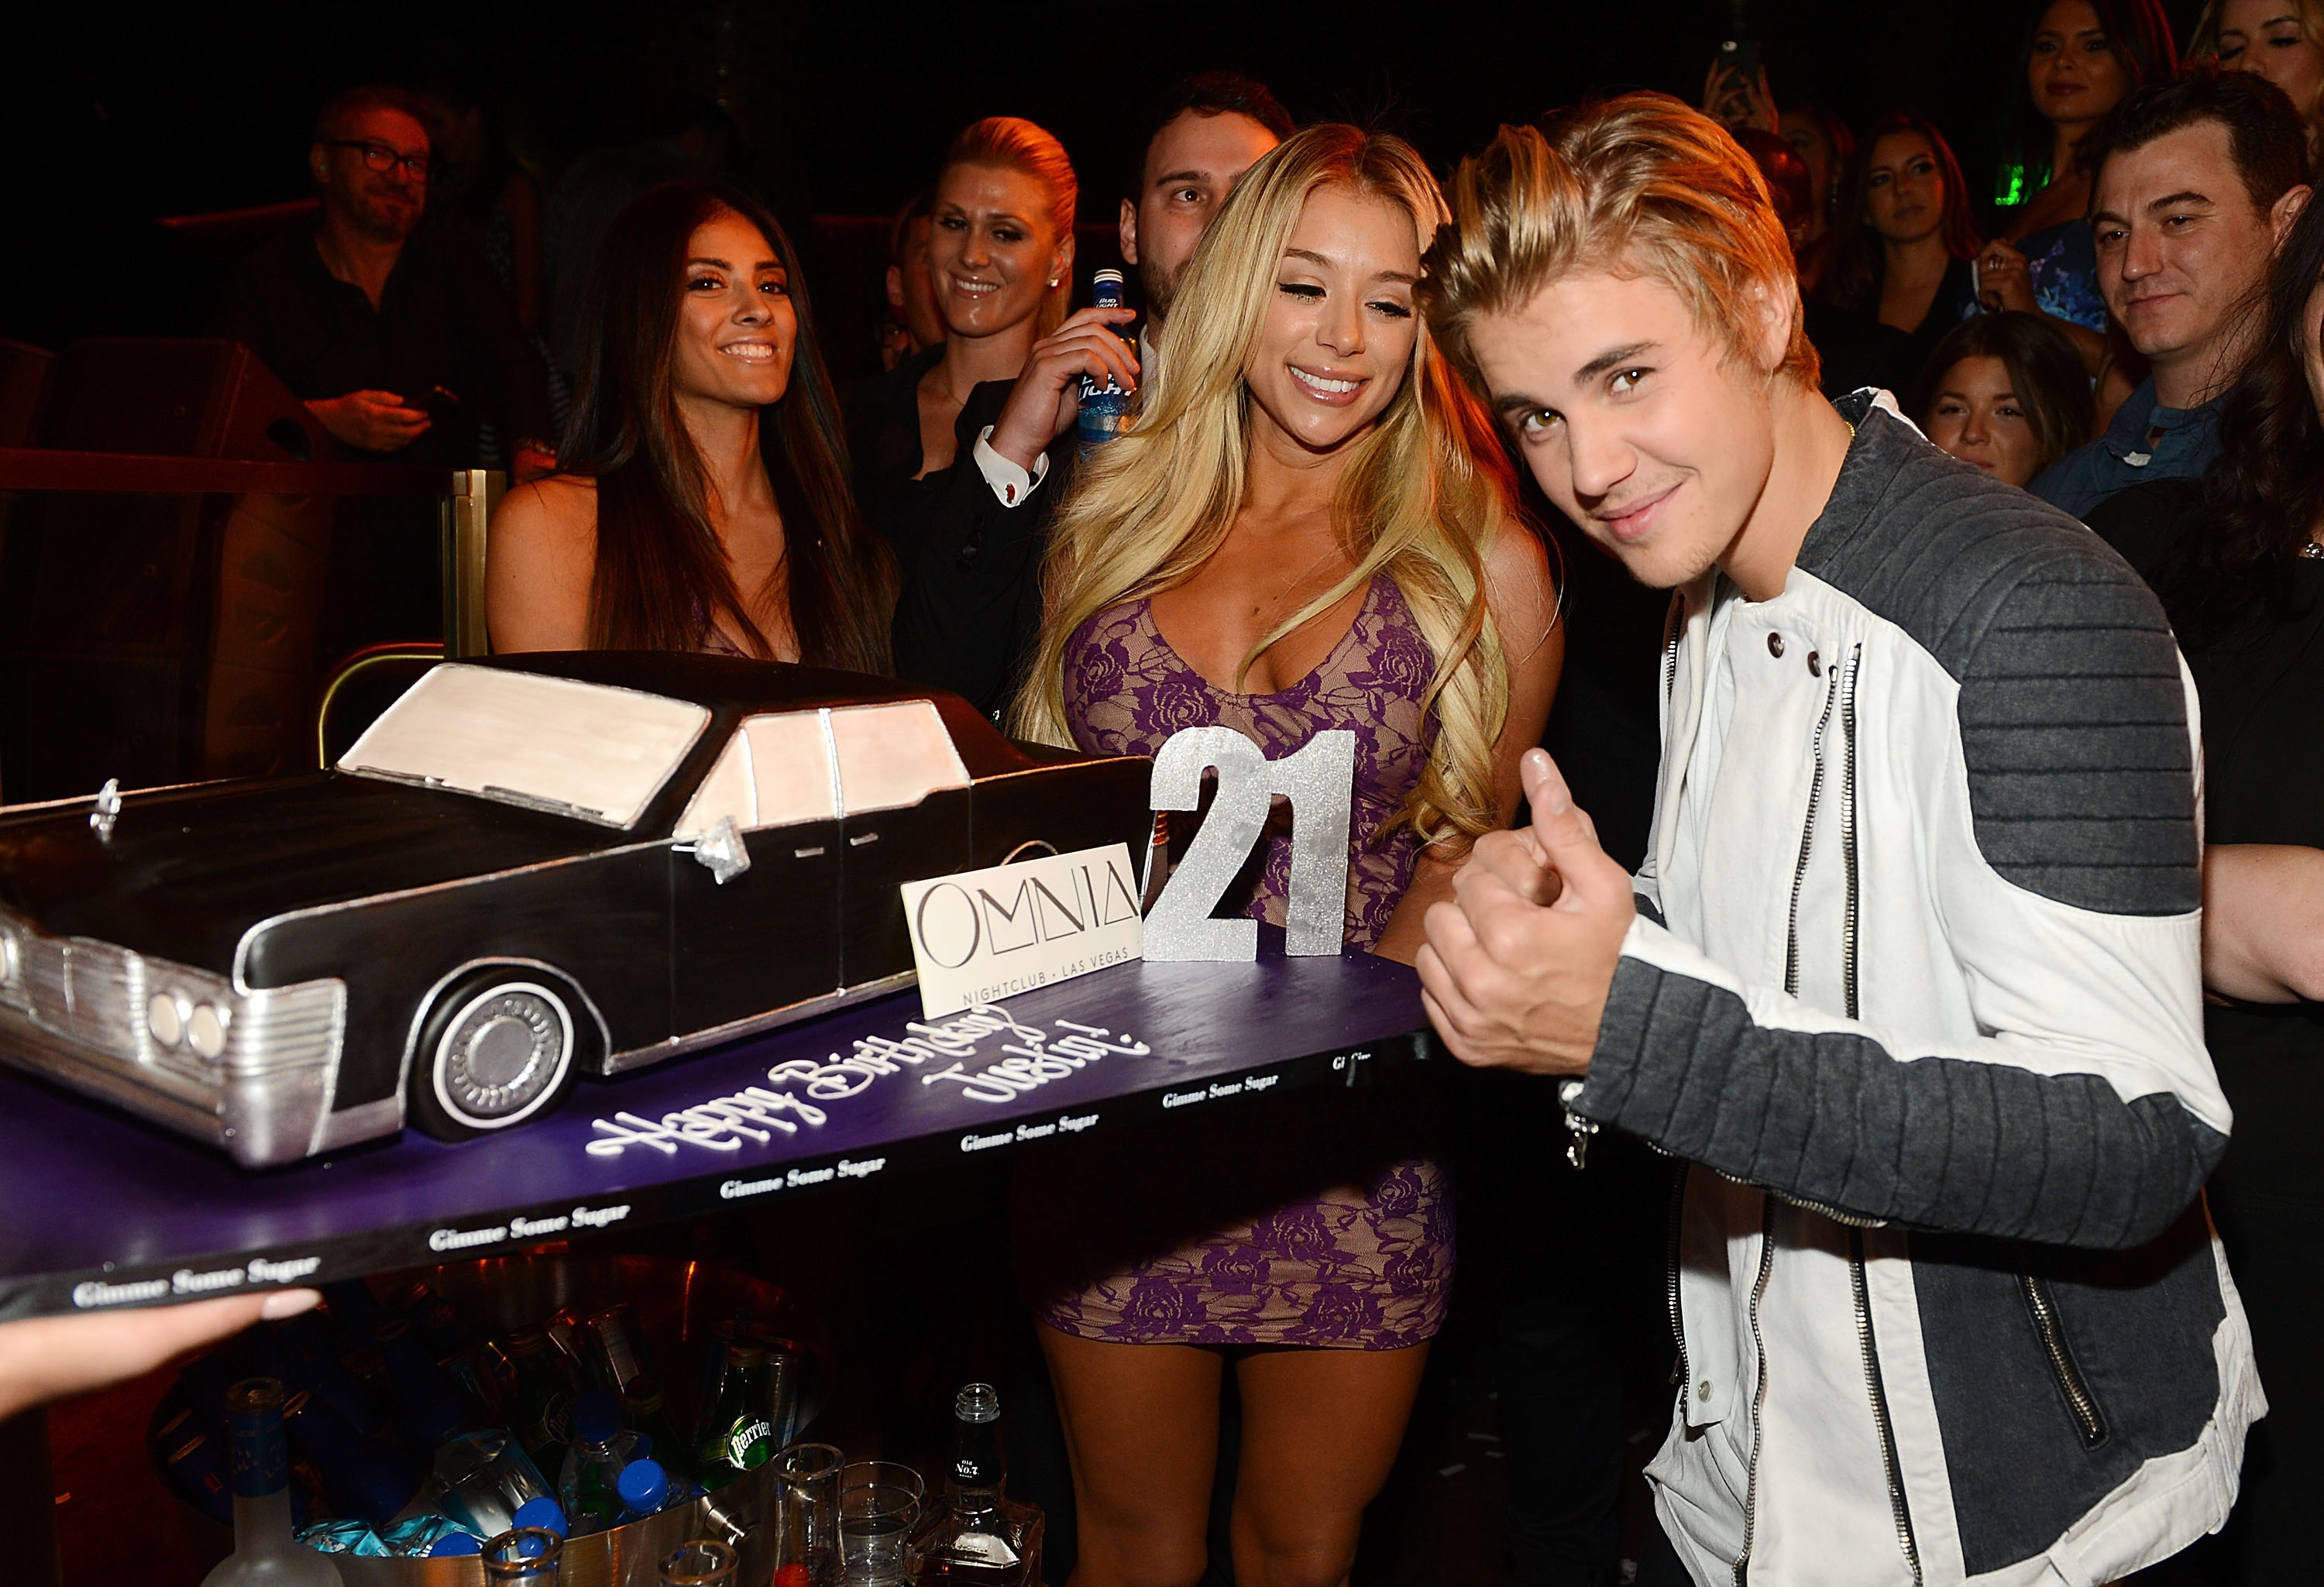 Justin Bieber celebrates his 21st birthday at OMNIA Nightclub, Las Vegas in Caesars Palace on March 14, 2015 in Las Vegas, Nevada.  (Photo by Denise Truscello/WireImage)